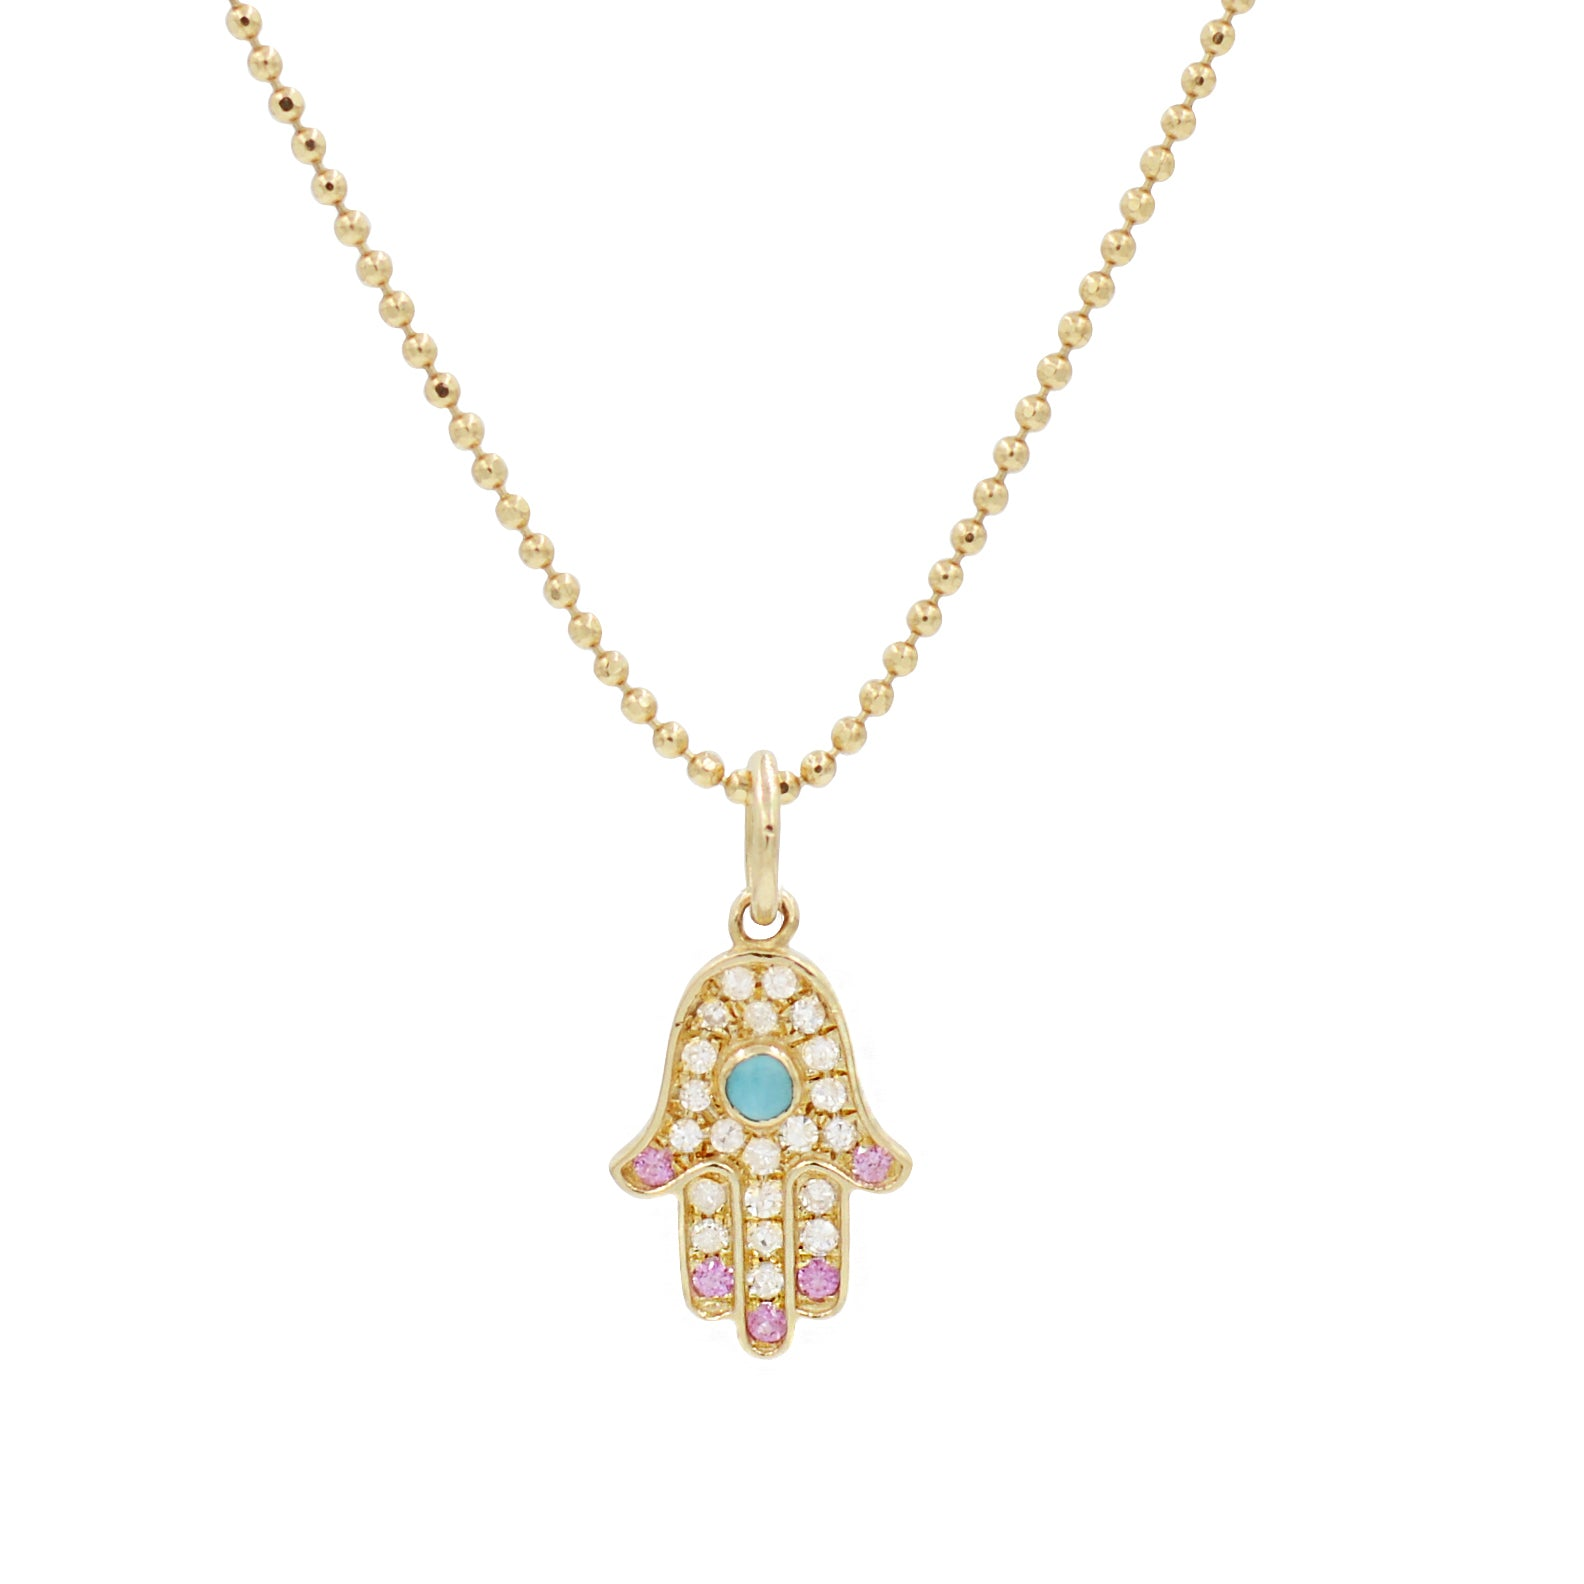 Hamsa Hand Necklace With Pink Sapphire, Turquoise and Diamonds